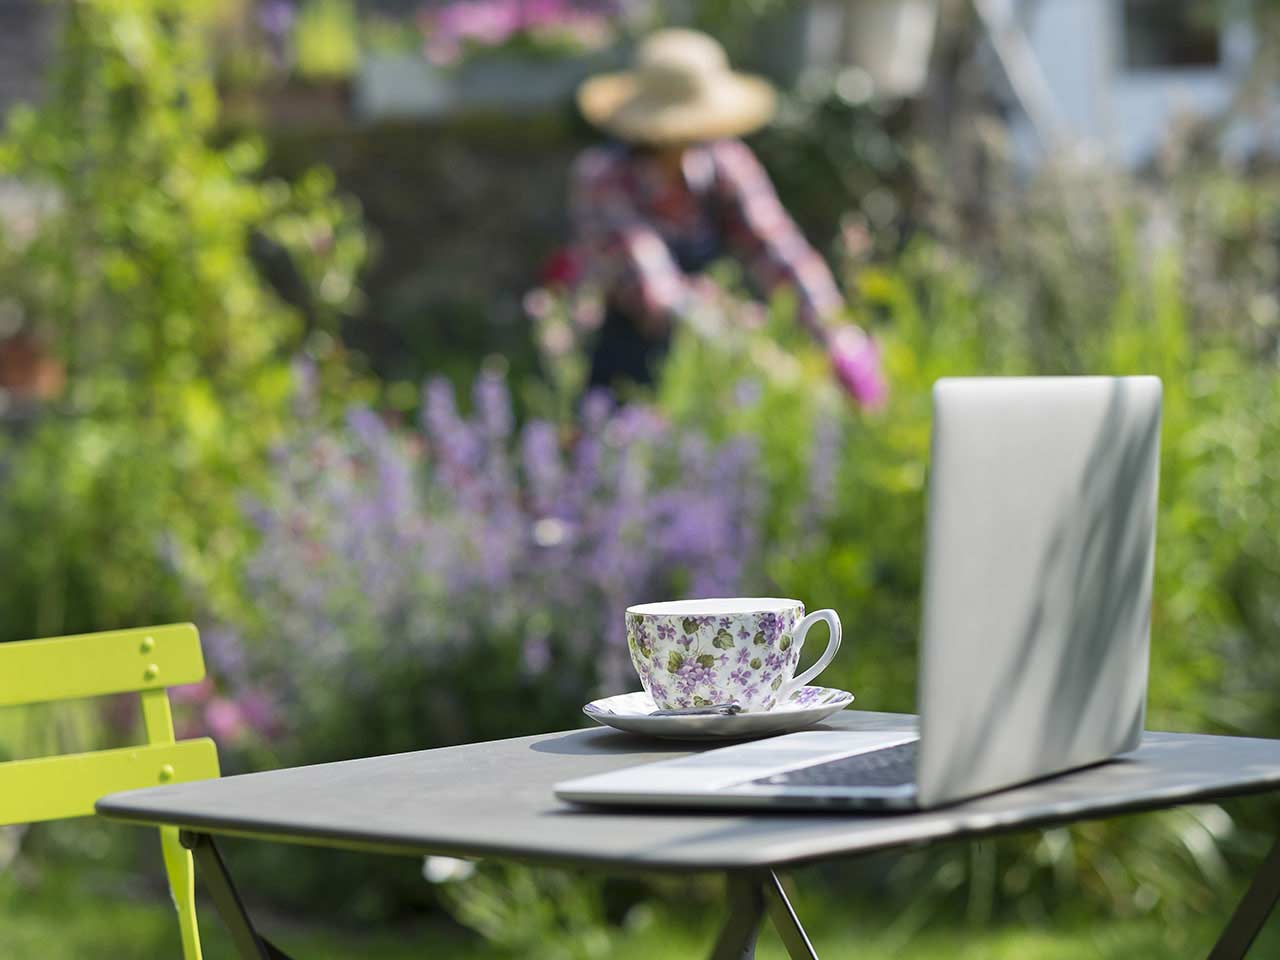 Lady gardening with laptop in foreground